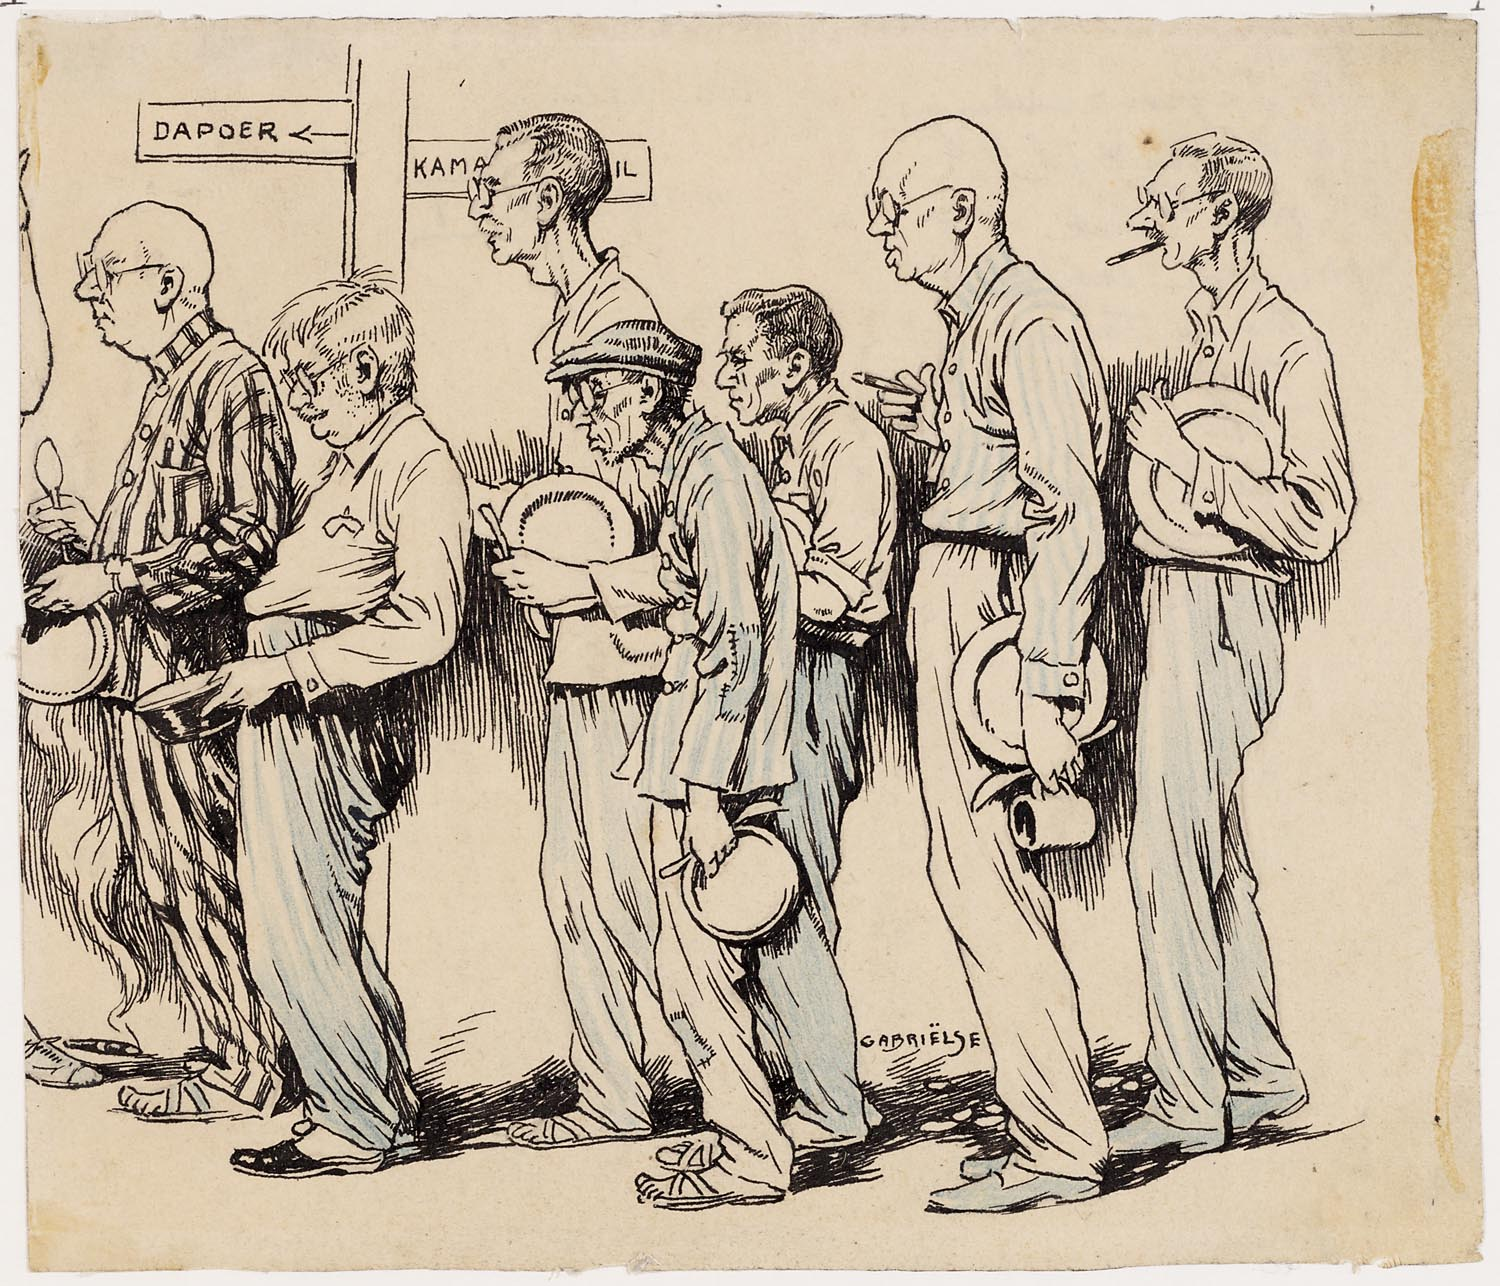 Prisoners drawings from japanese camps in the occupied for 1945 dutch east indies cuisine